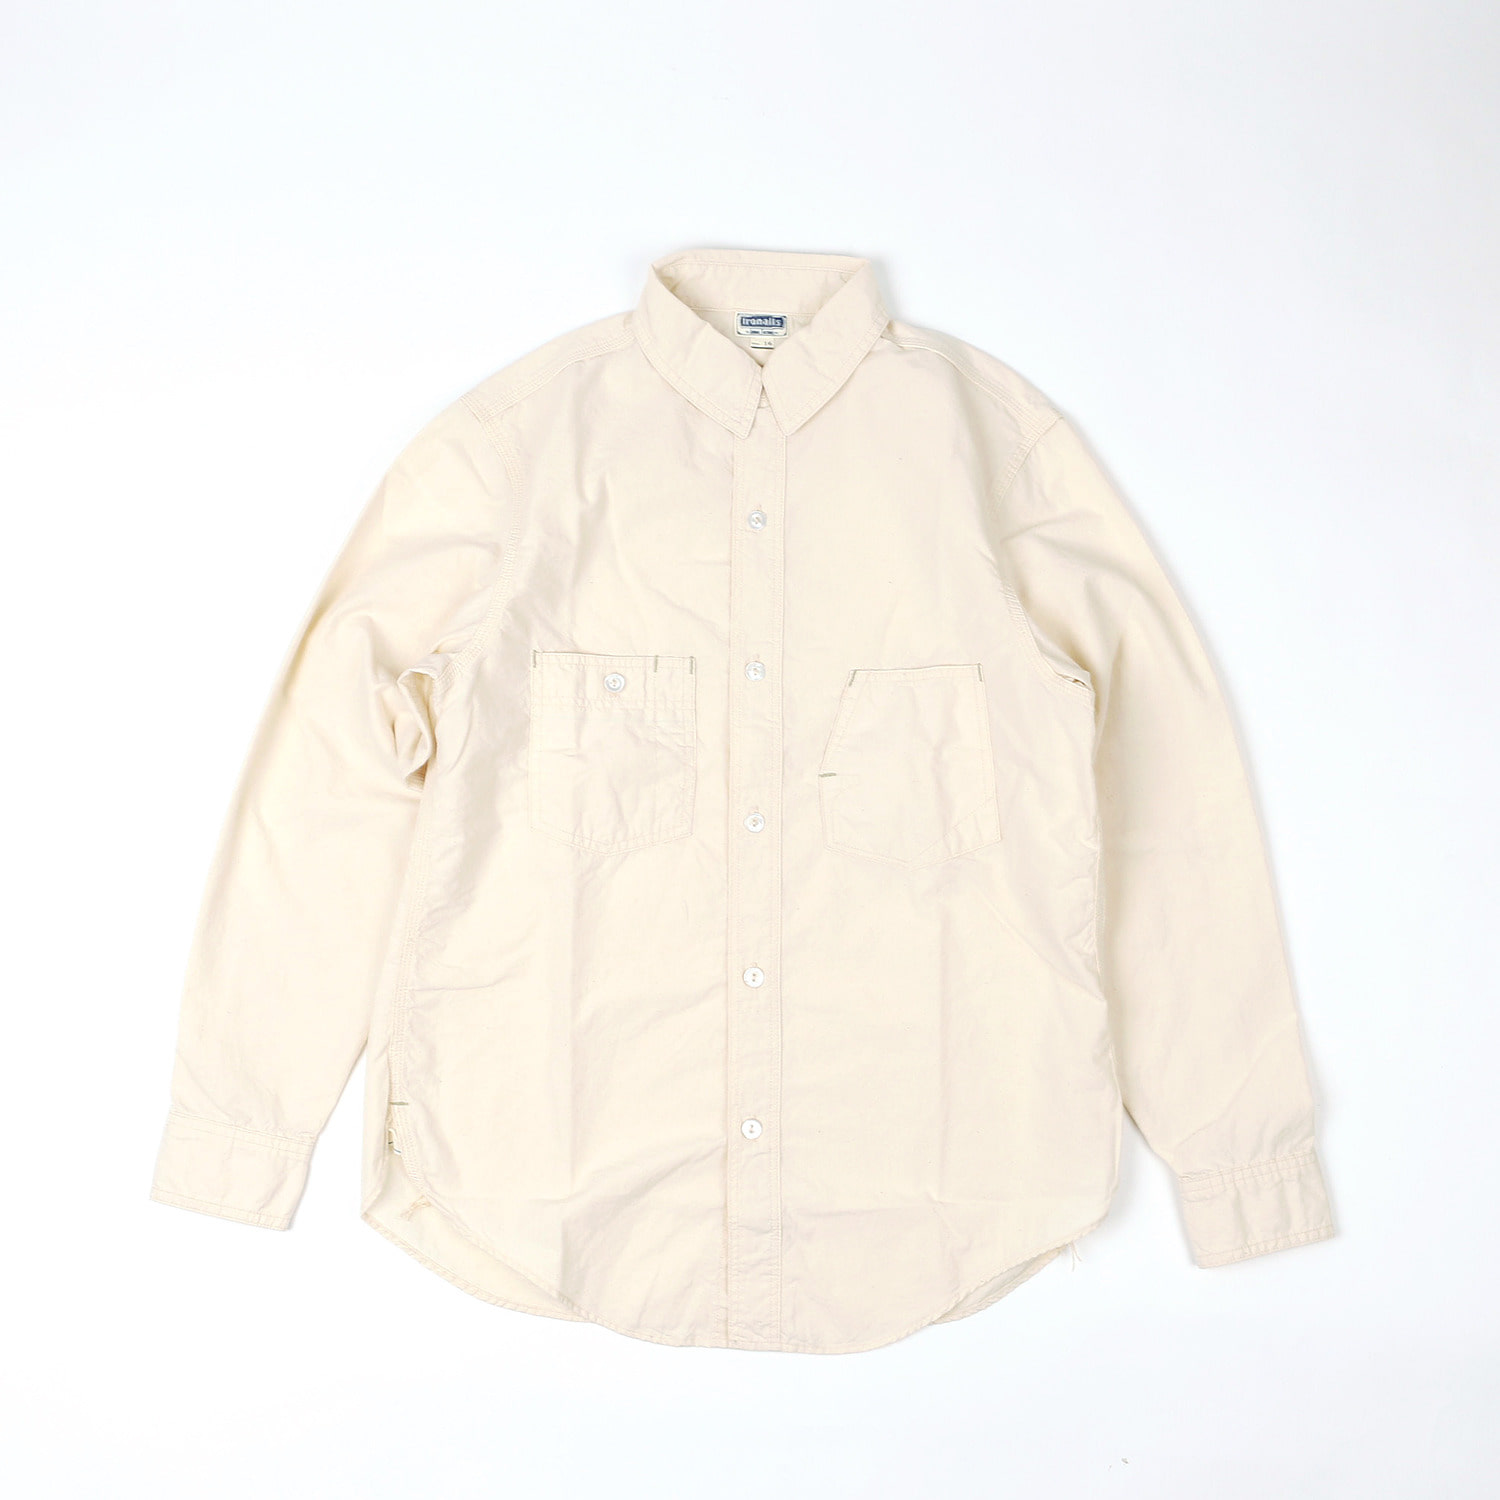 "[IRON ALL FACTORIES CO.]Work Shirts""IRONALLS WORKSHIRTS""(White Chambray)"